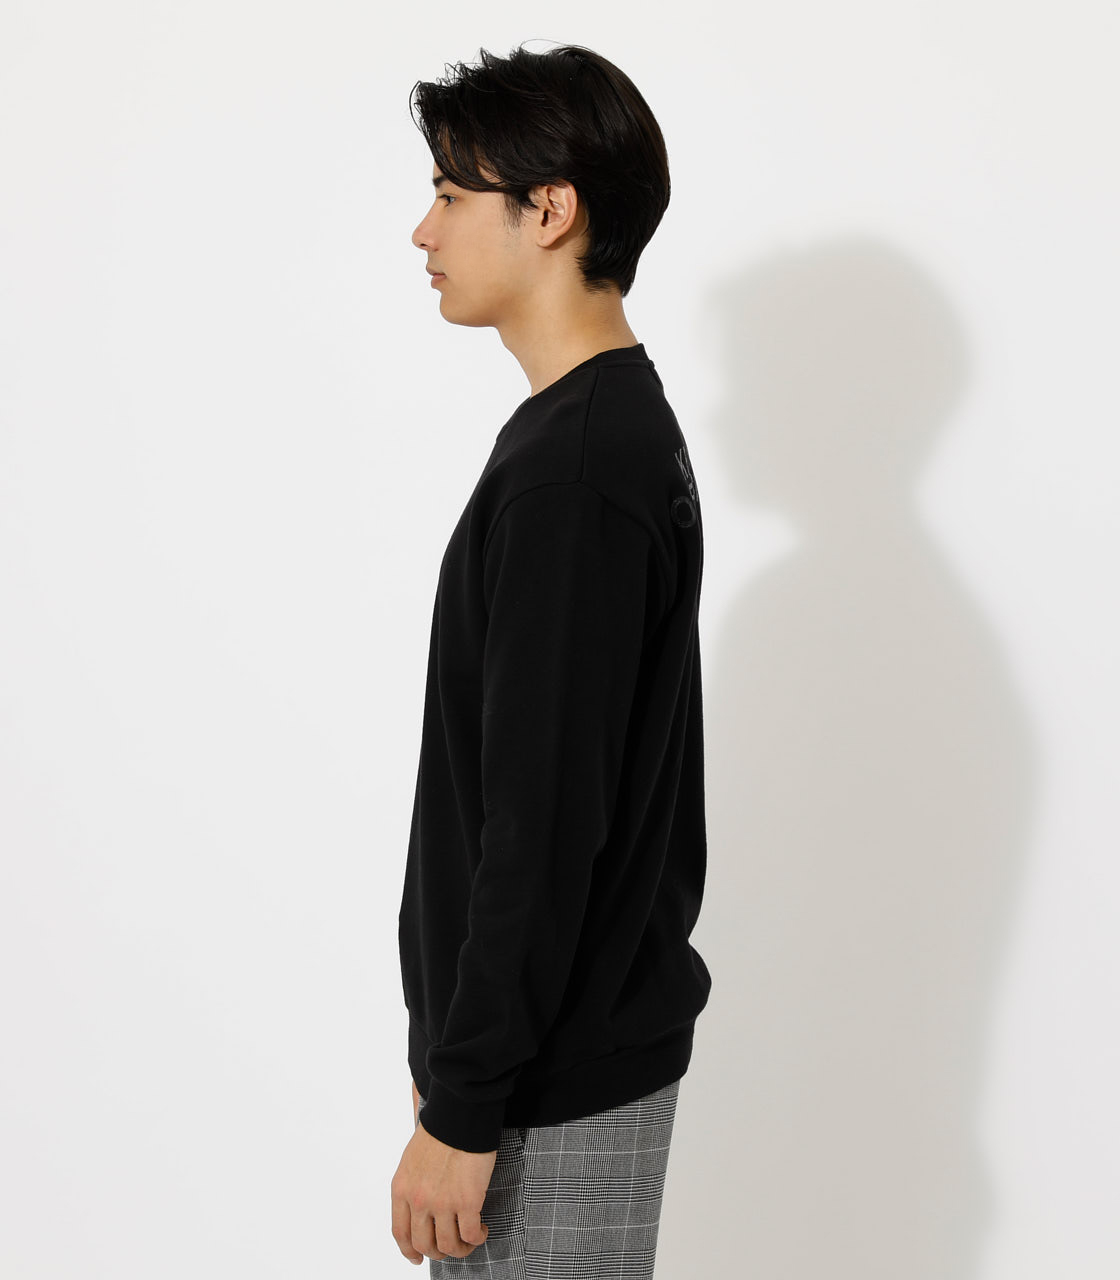 SYNC/HIVE PULLOVER/シンク/ハイブプルオーバー 詳細画像 BLK 5